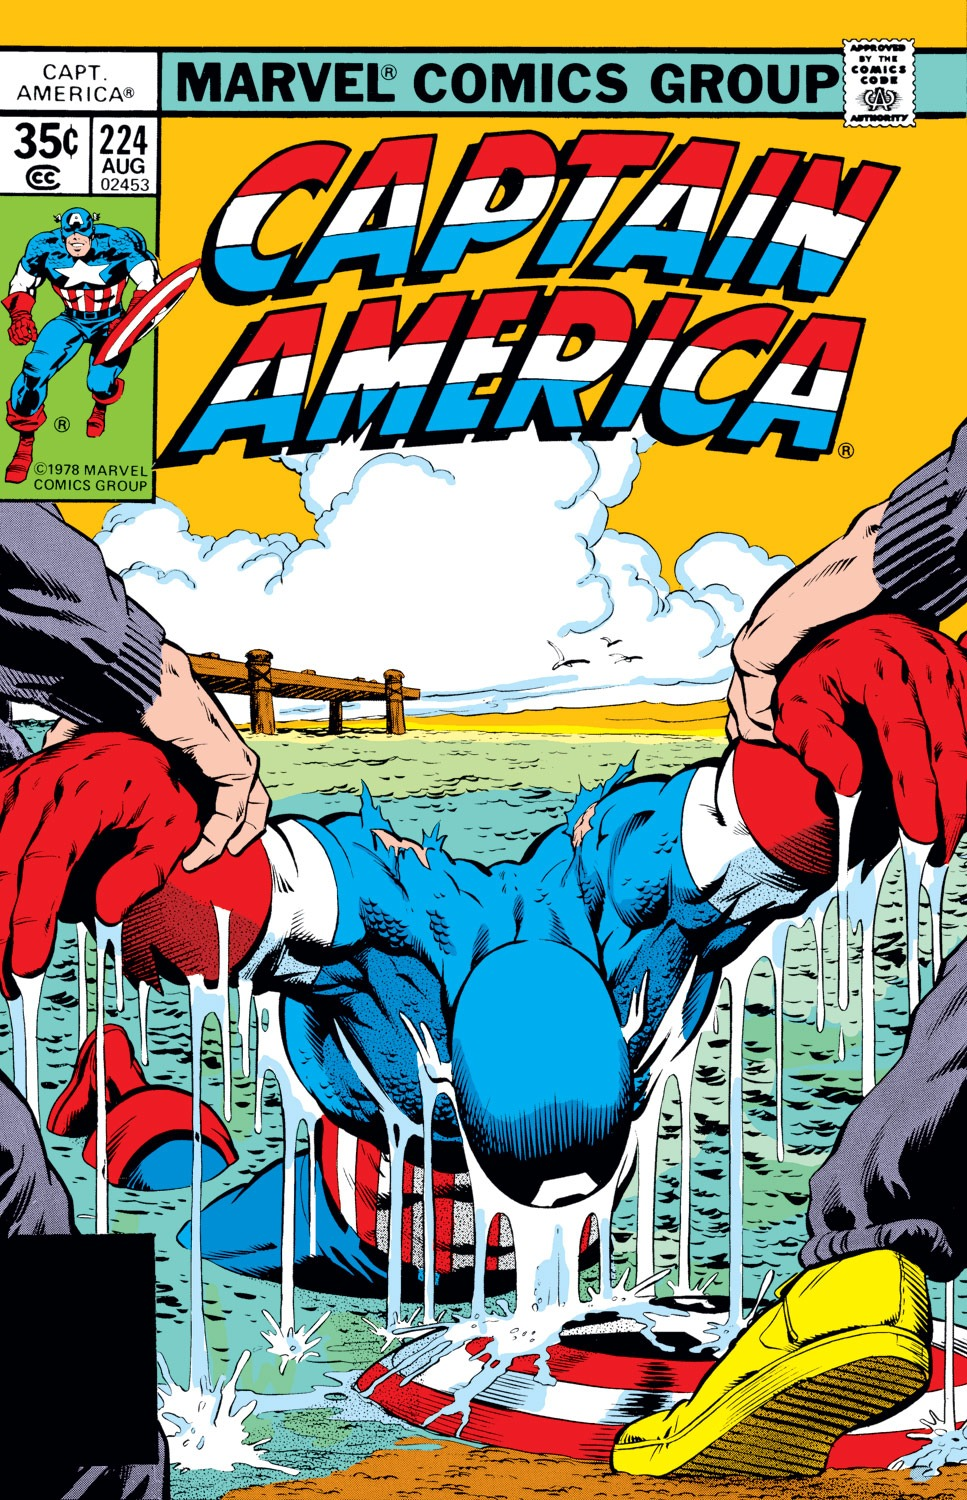 Captain America (1968) #224, cover penciled by Mike Zeck & inked by Bob McLeod.